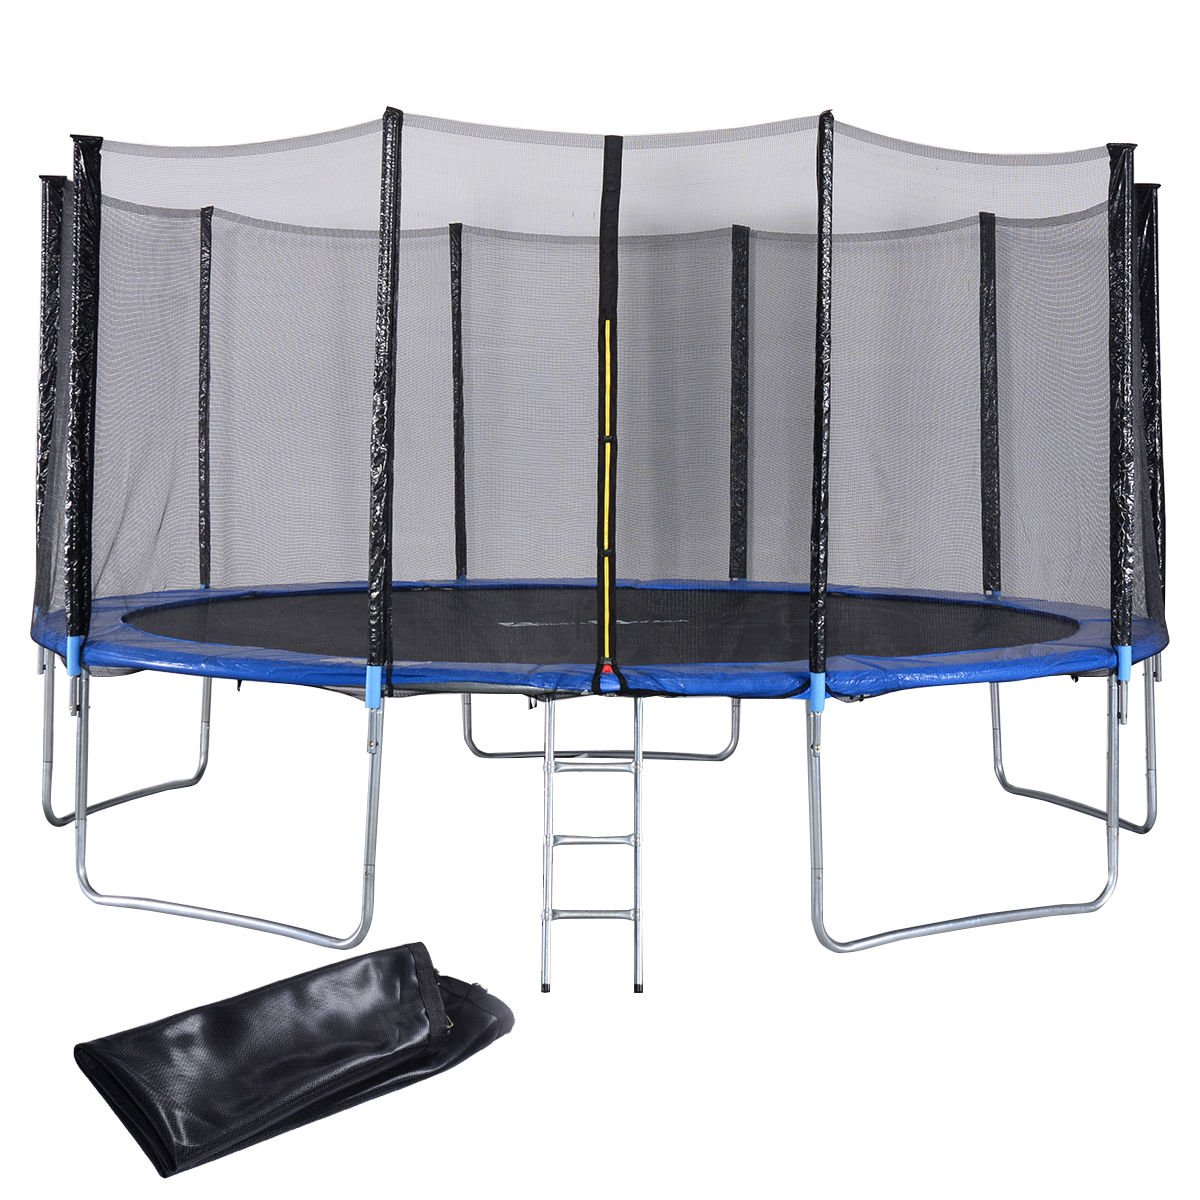 Giantex 15FT Trampoline Combo Bounce Jump Safety Enclosure Net W/Spring Pad Ladder (15FT)